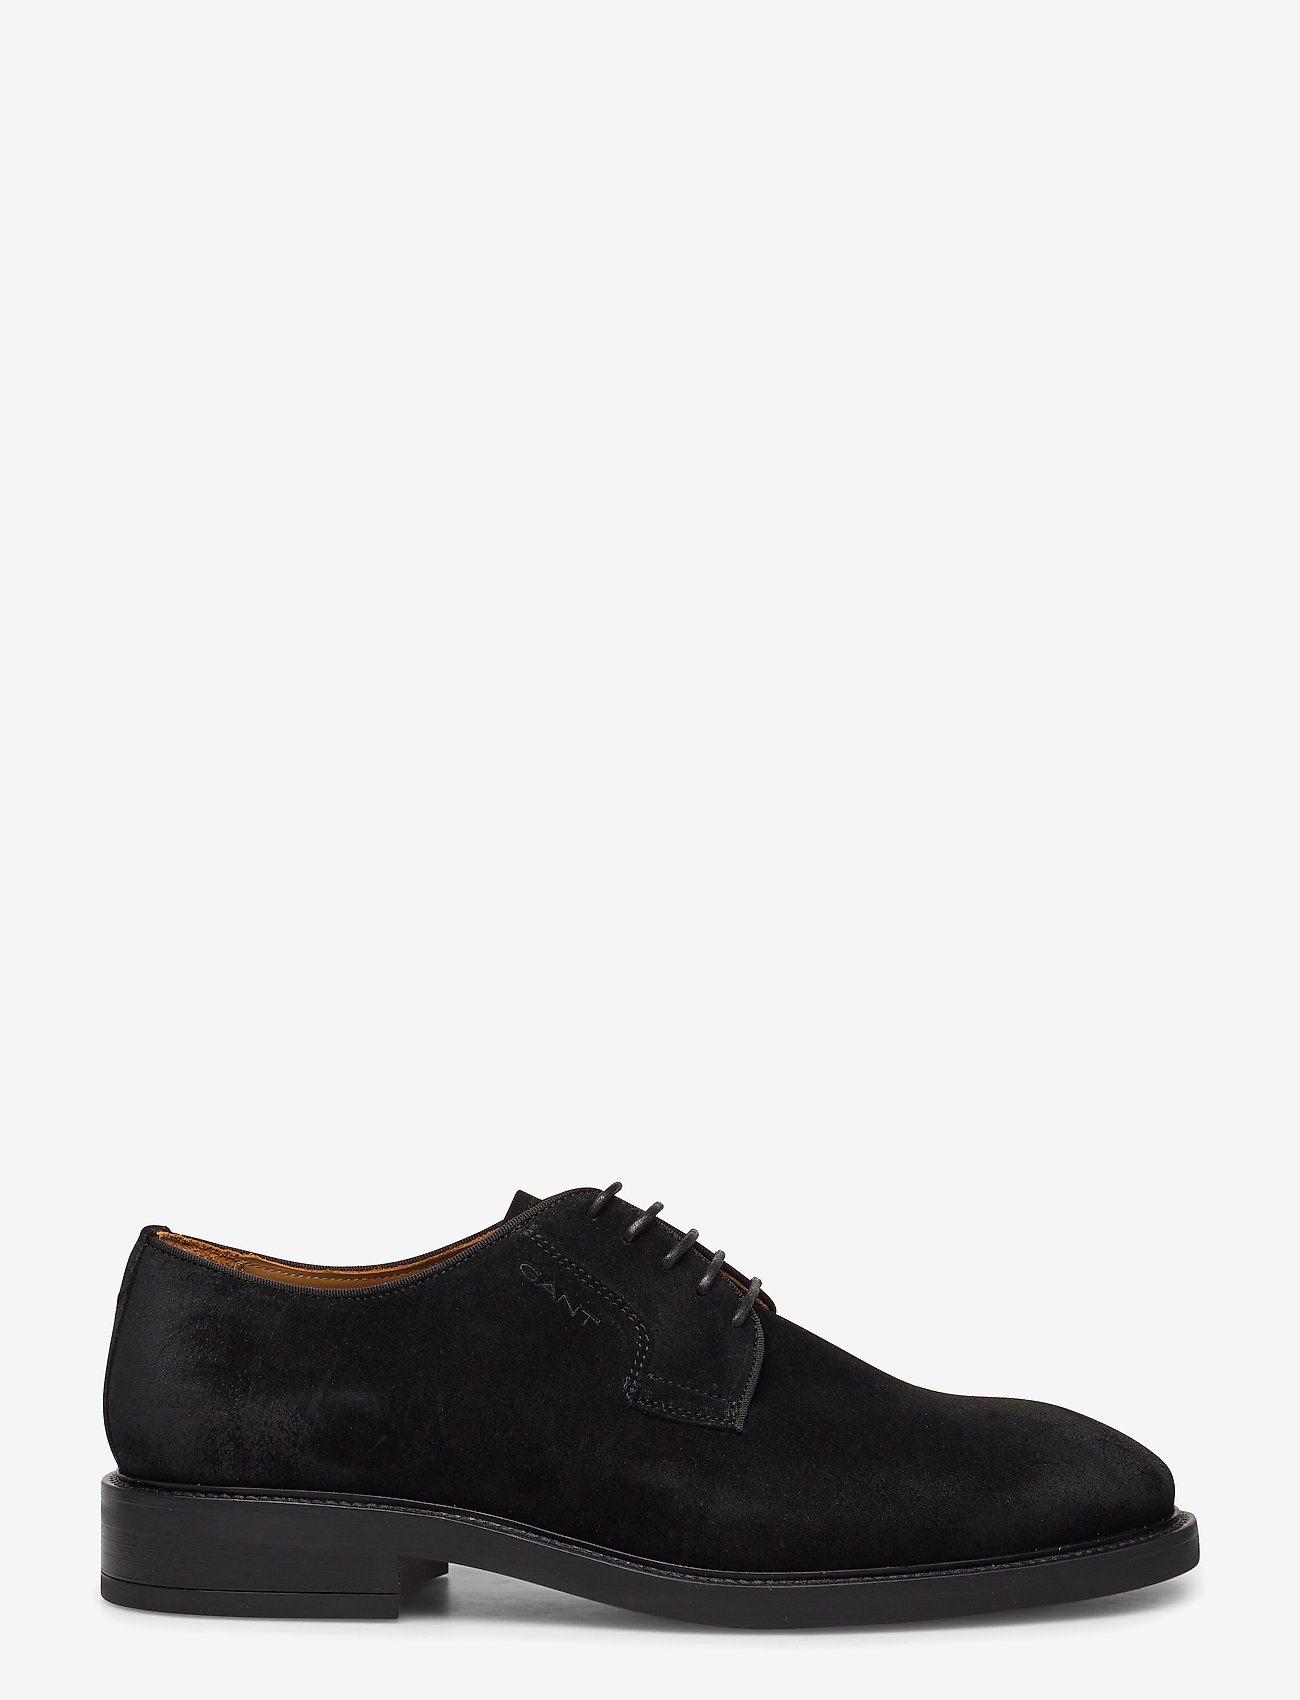 GANT - Flairville Low laceshoes - snøresko - black - 1